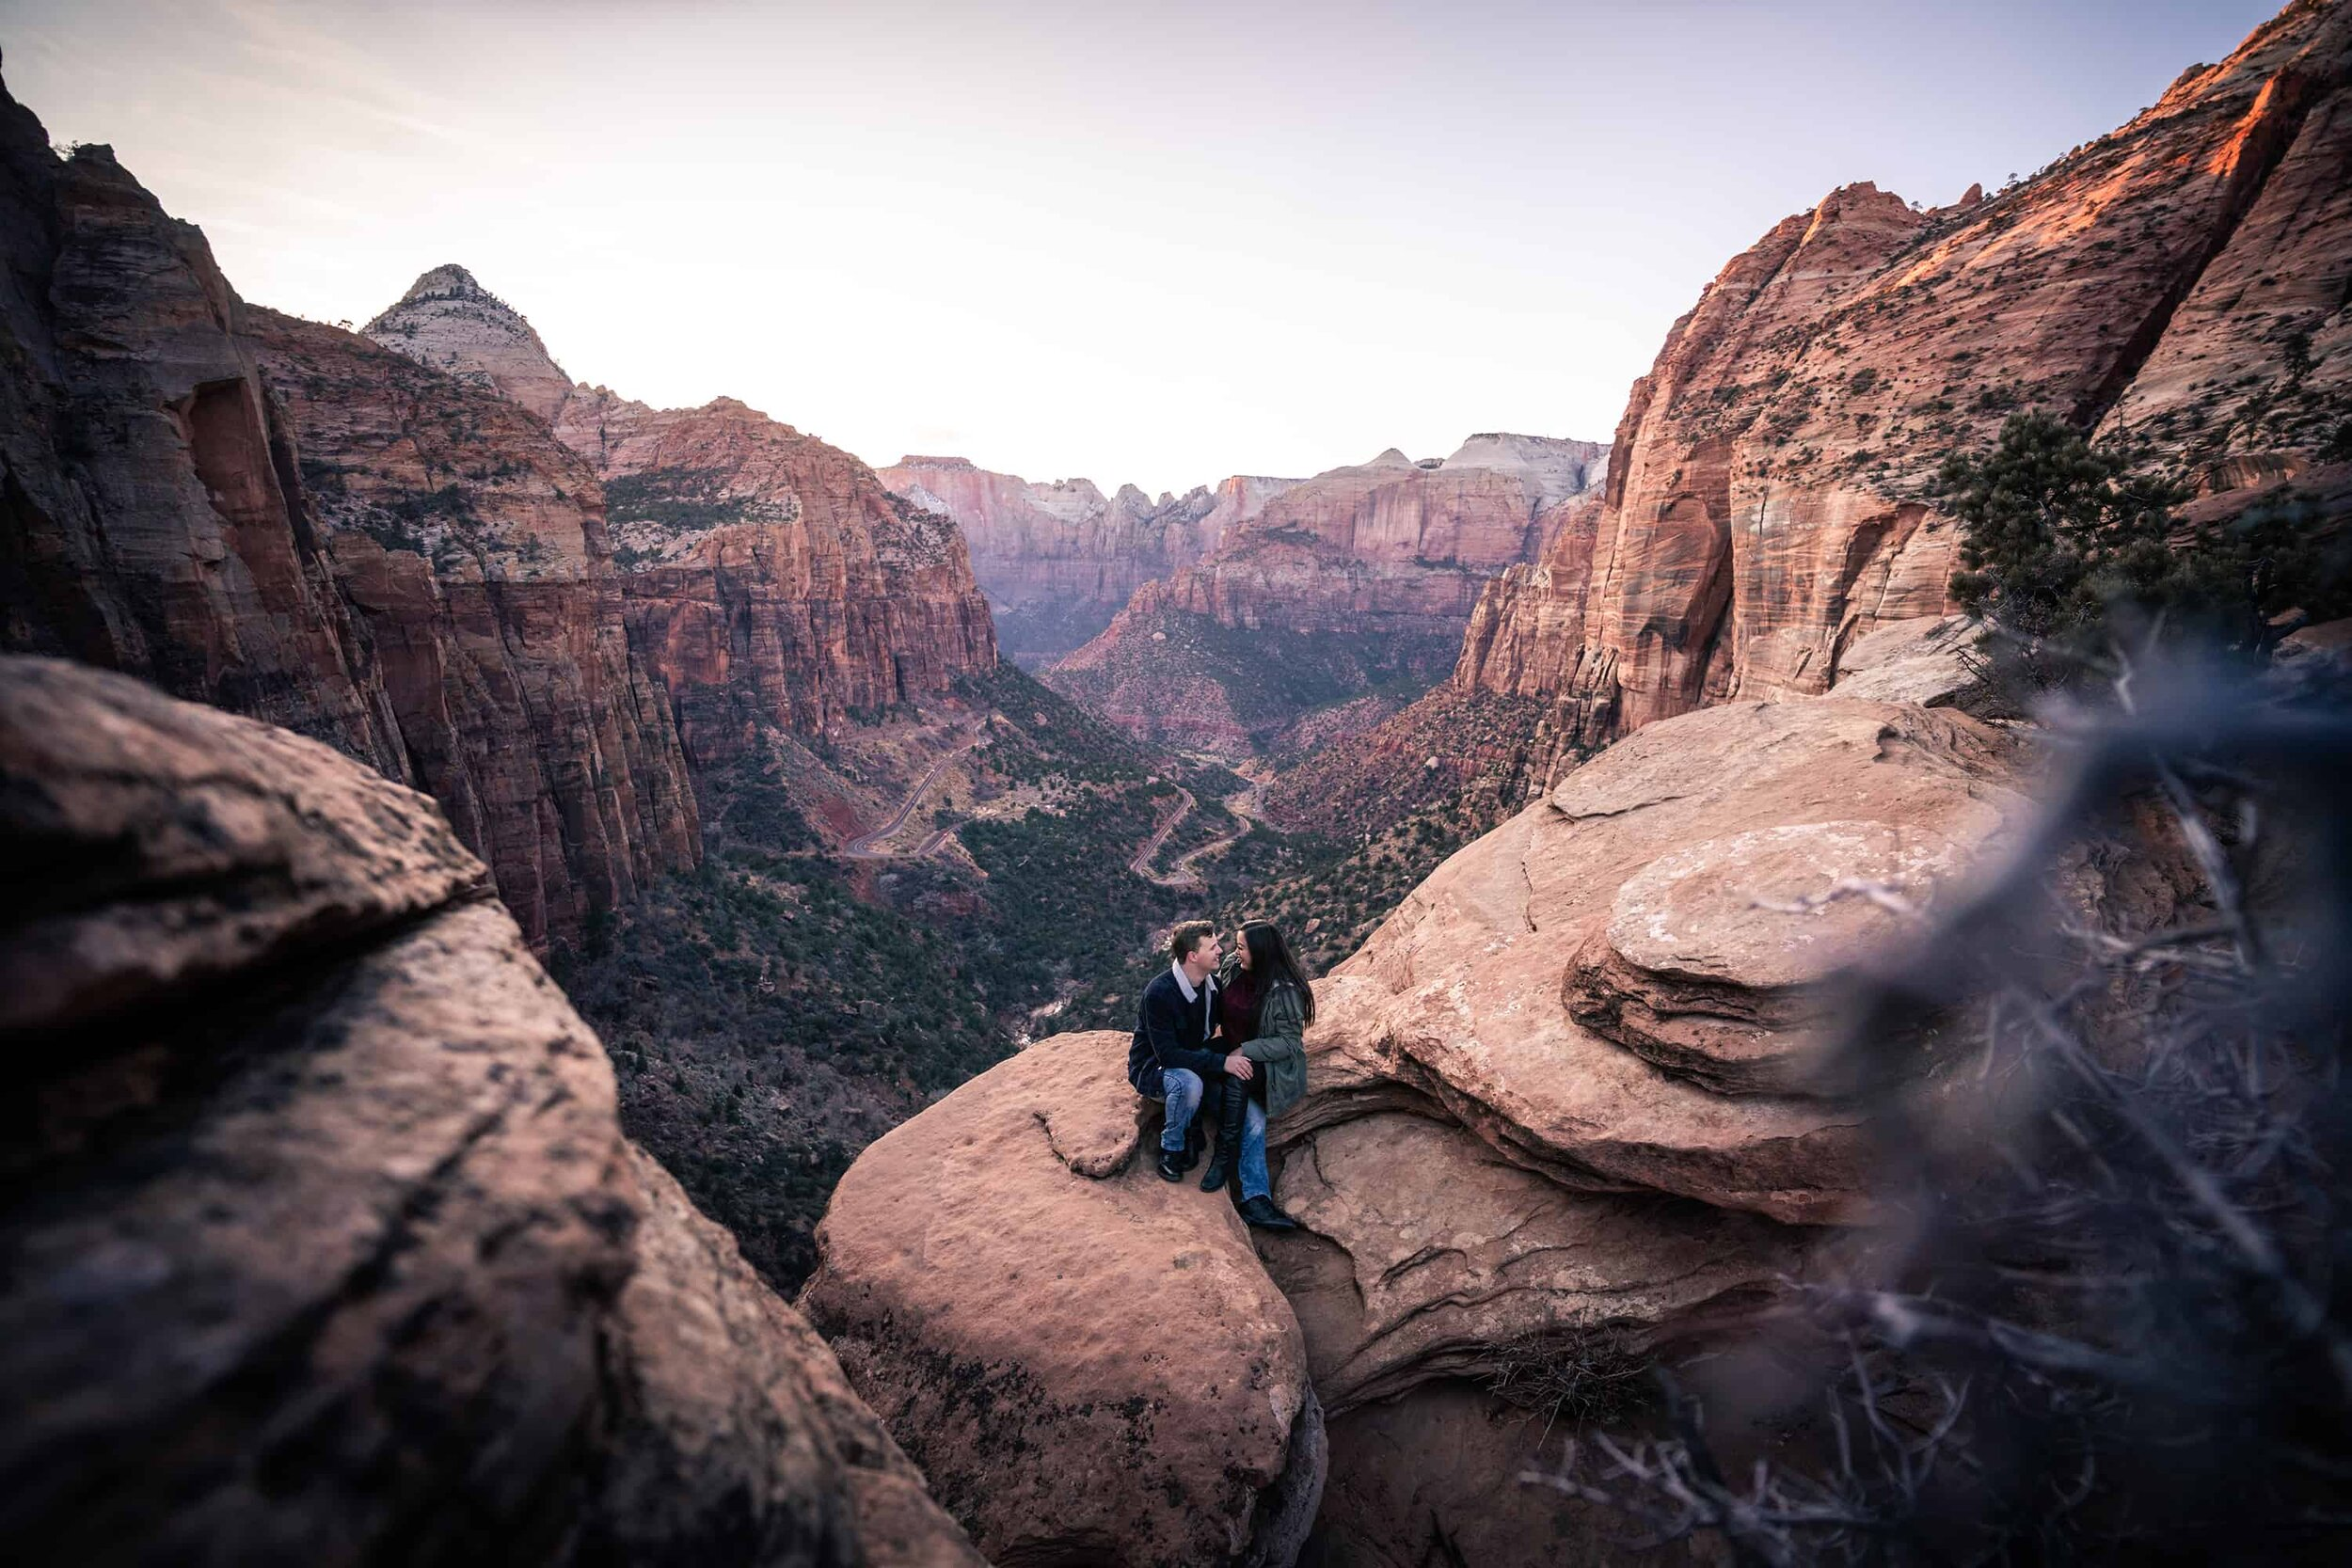 zion canyon overlook trail photographer